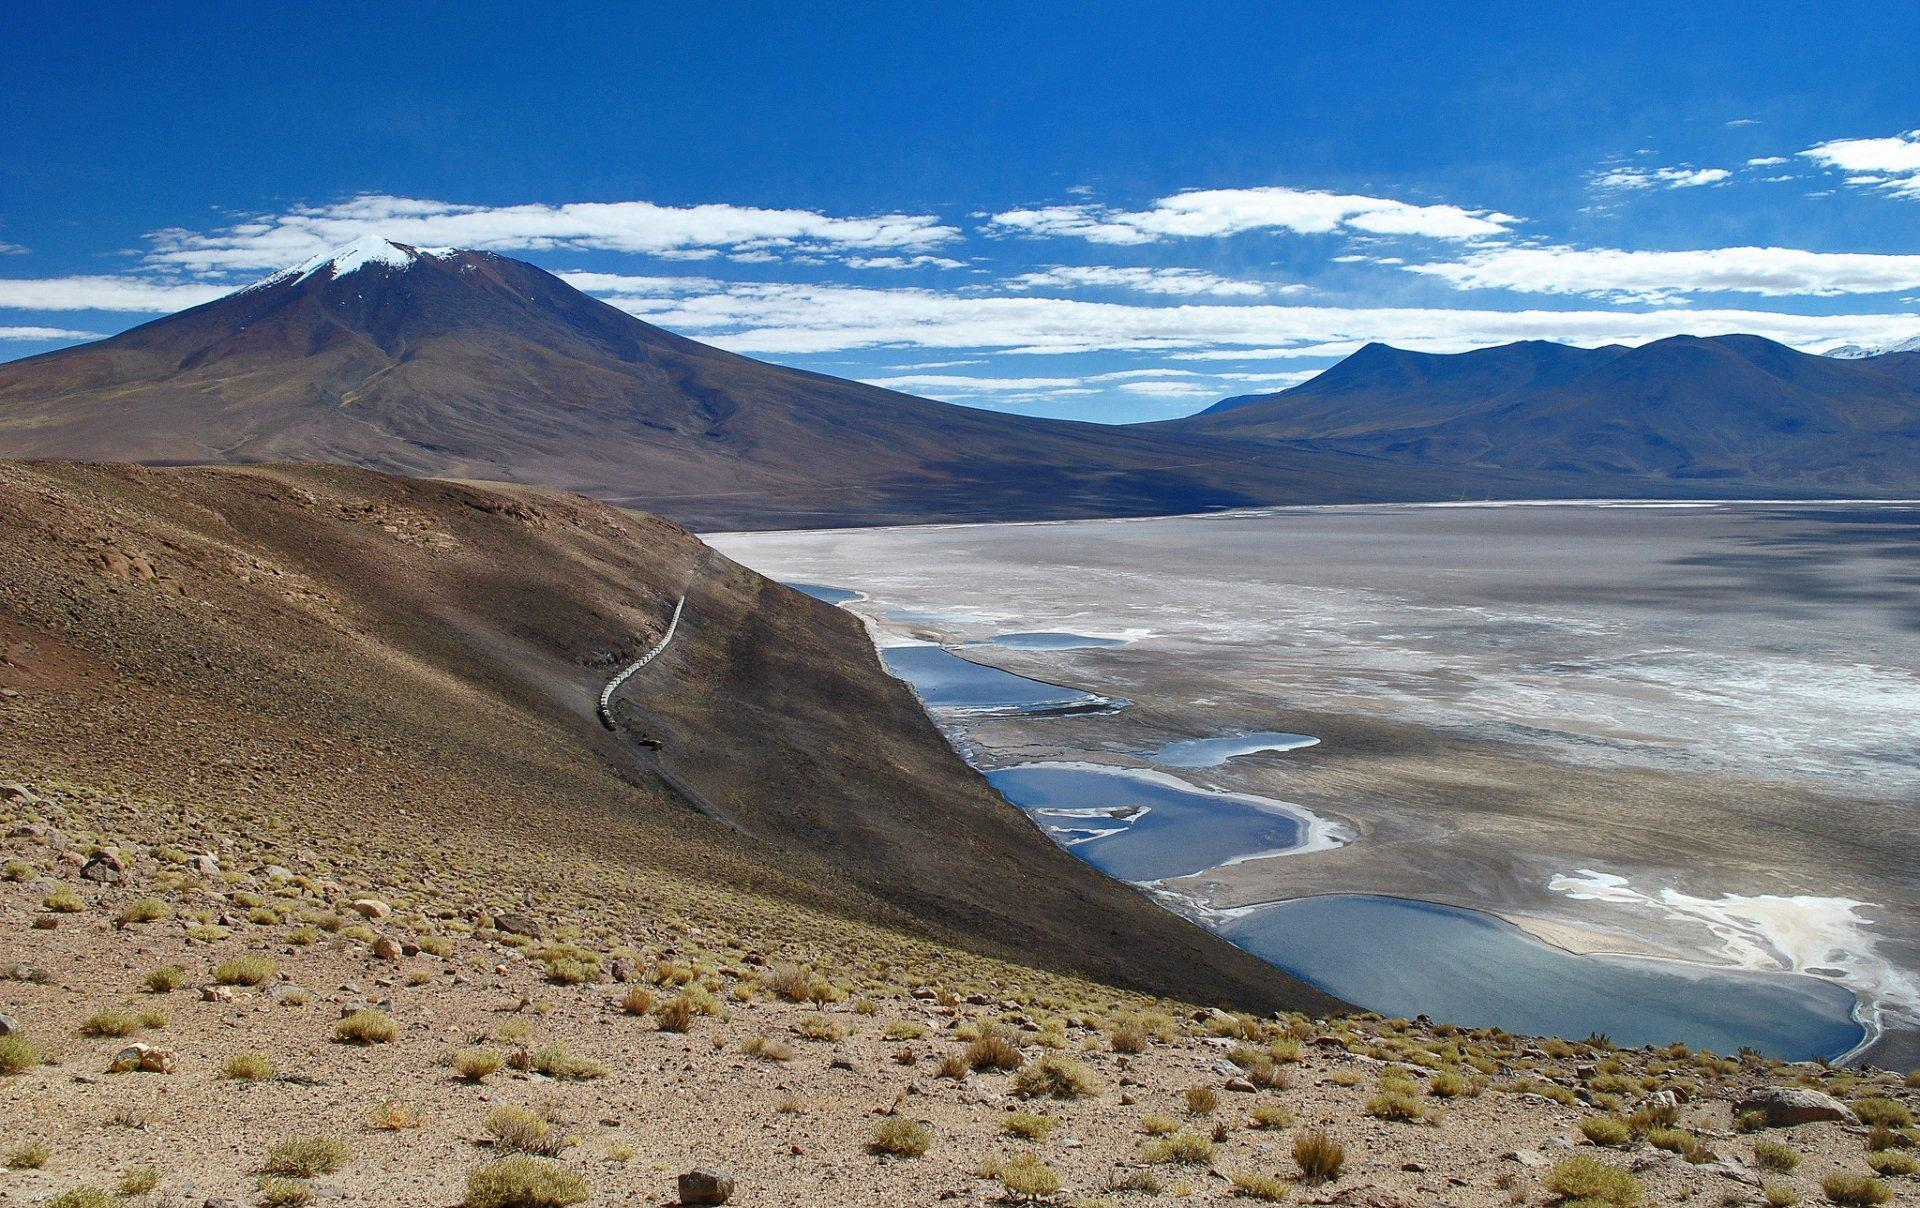 bolivia desert plain altiplano dry lake salar de uyuni HD wallpapers